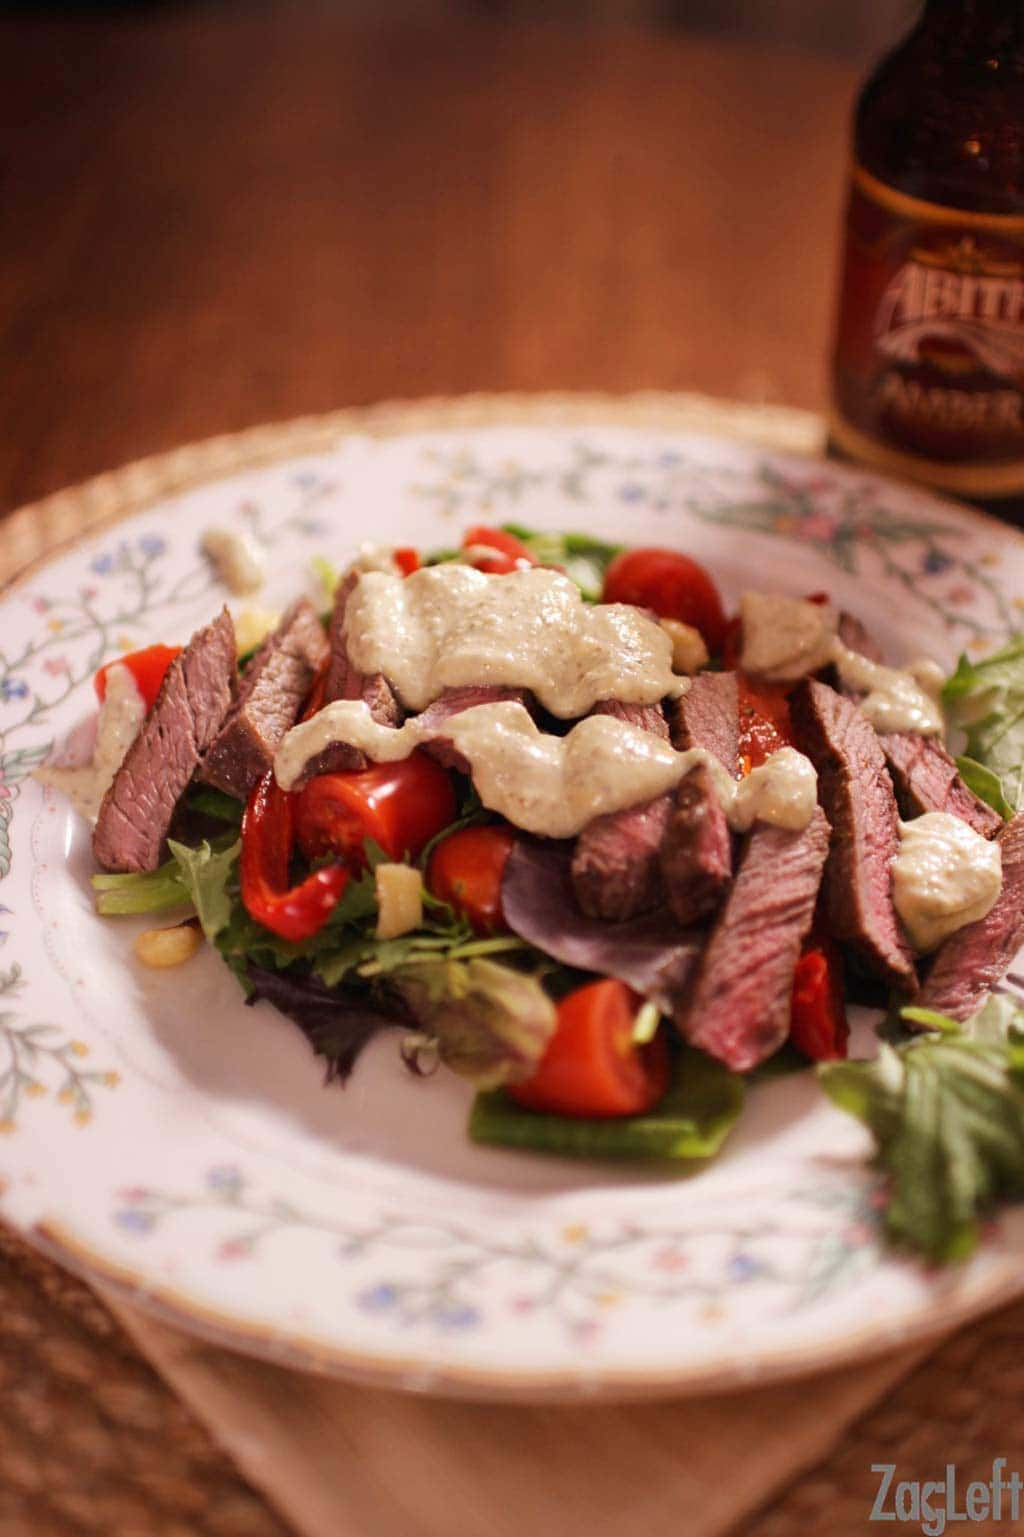 A plate of steak salad with gorgonzola dressing next to a beer bottle